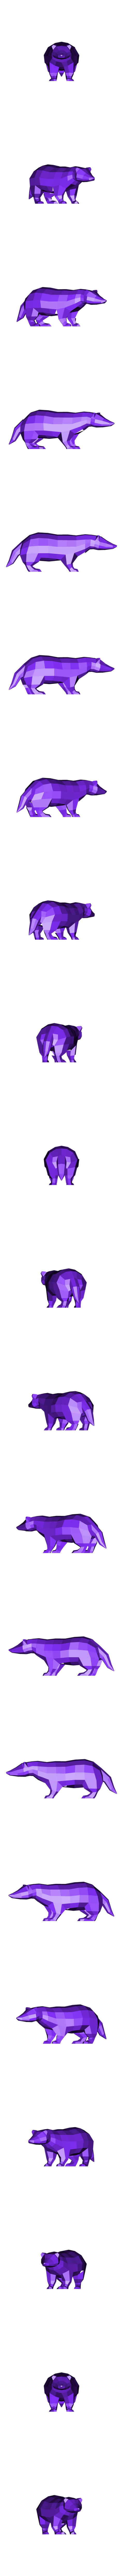 Badger.obj Download free OBJ file Badger • 3D printer model, Colorful3D